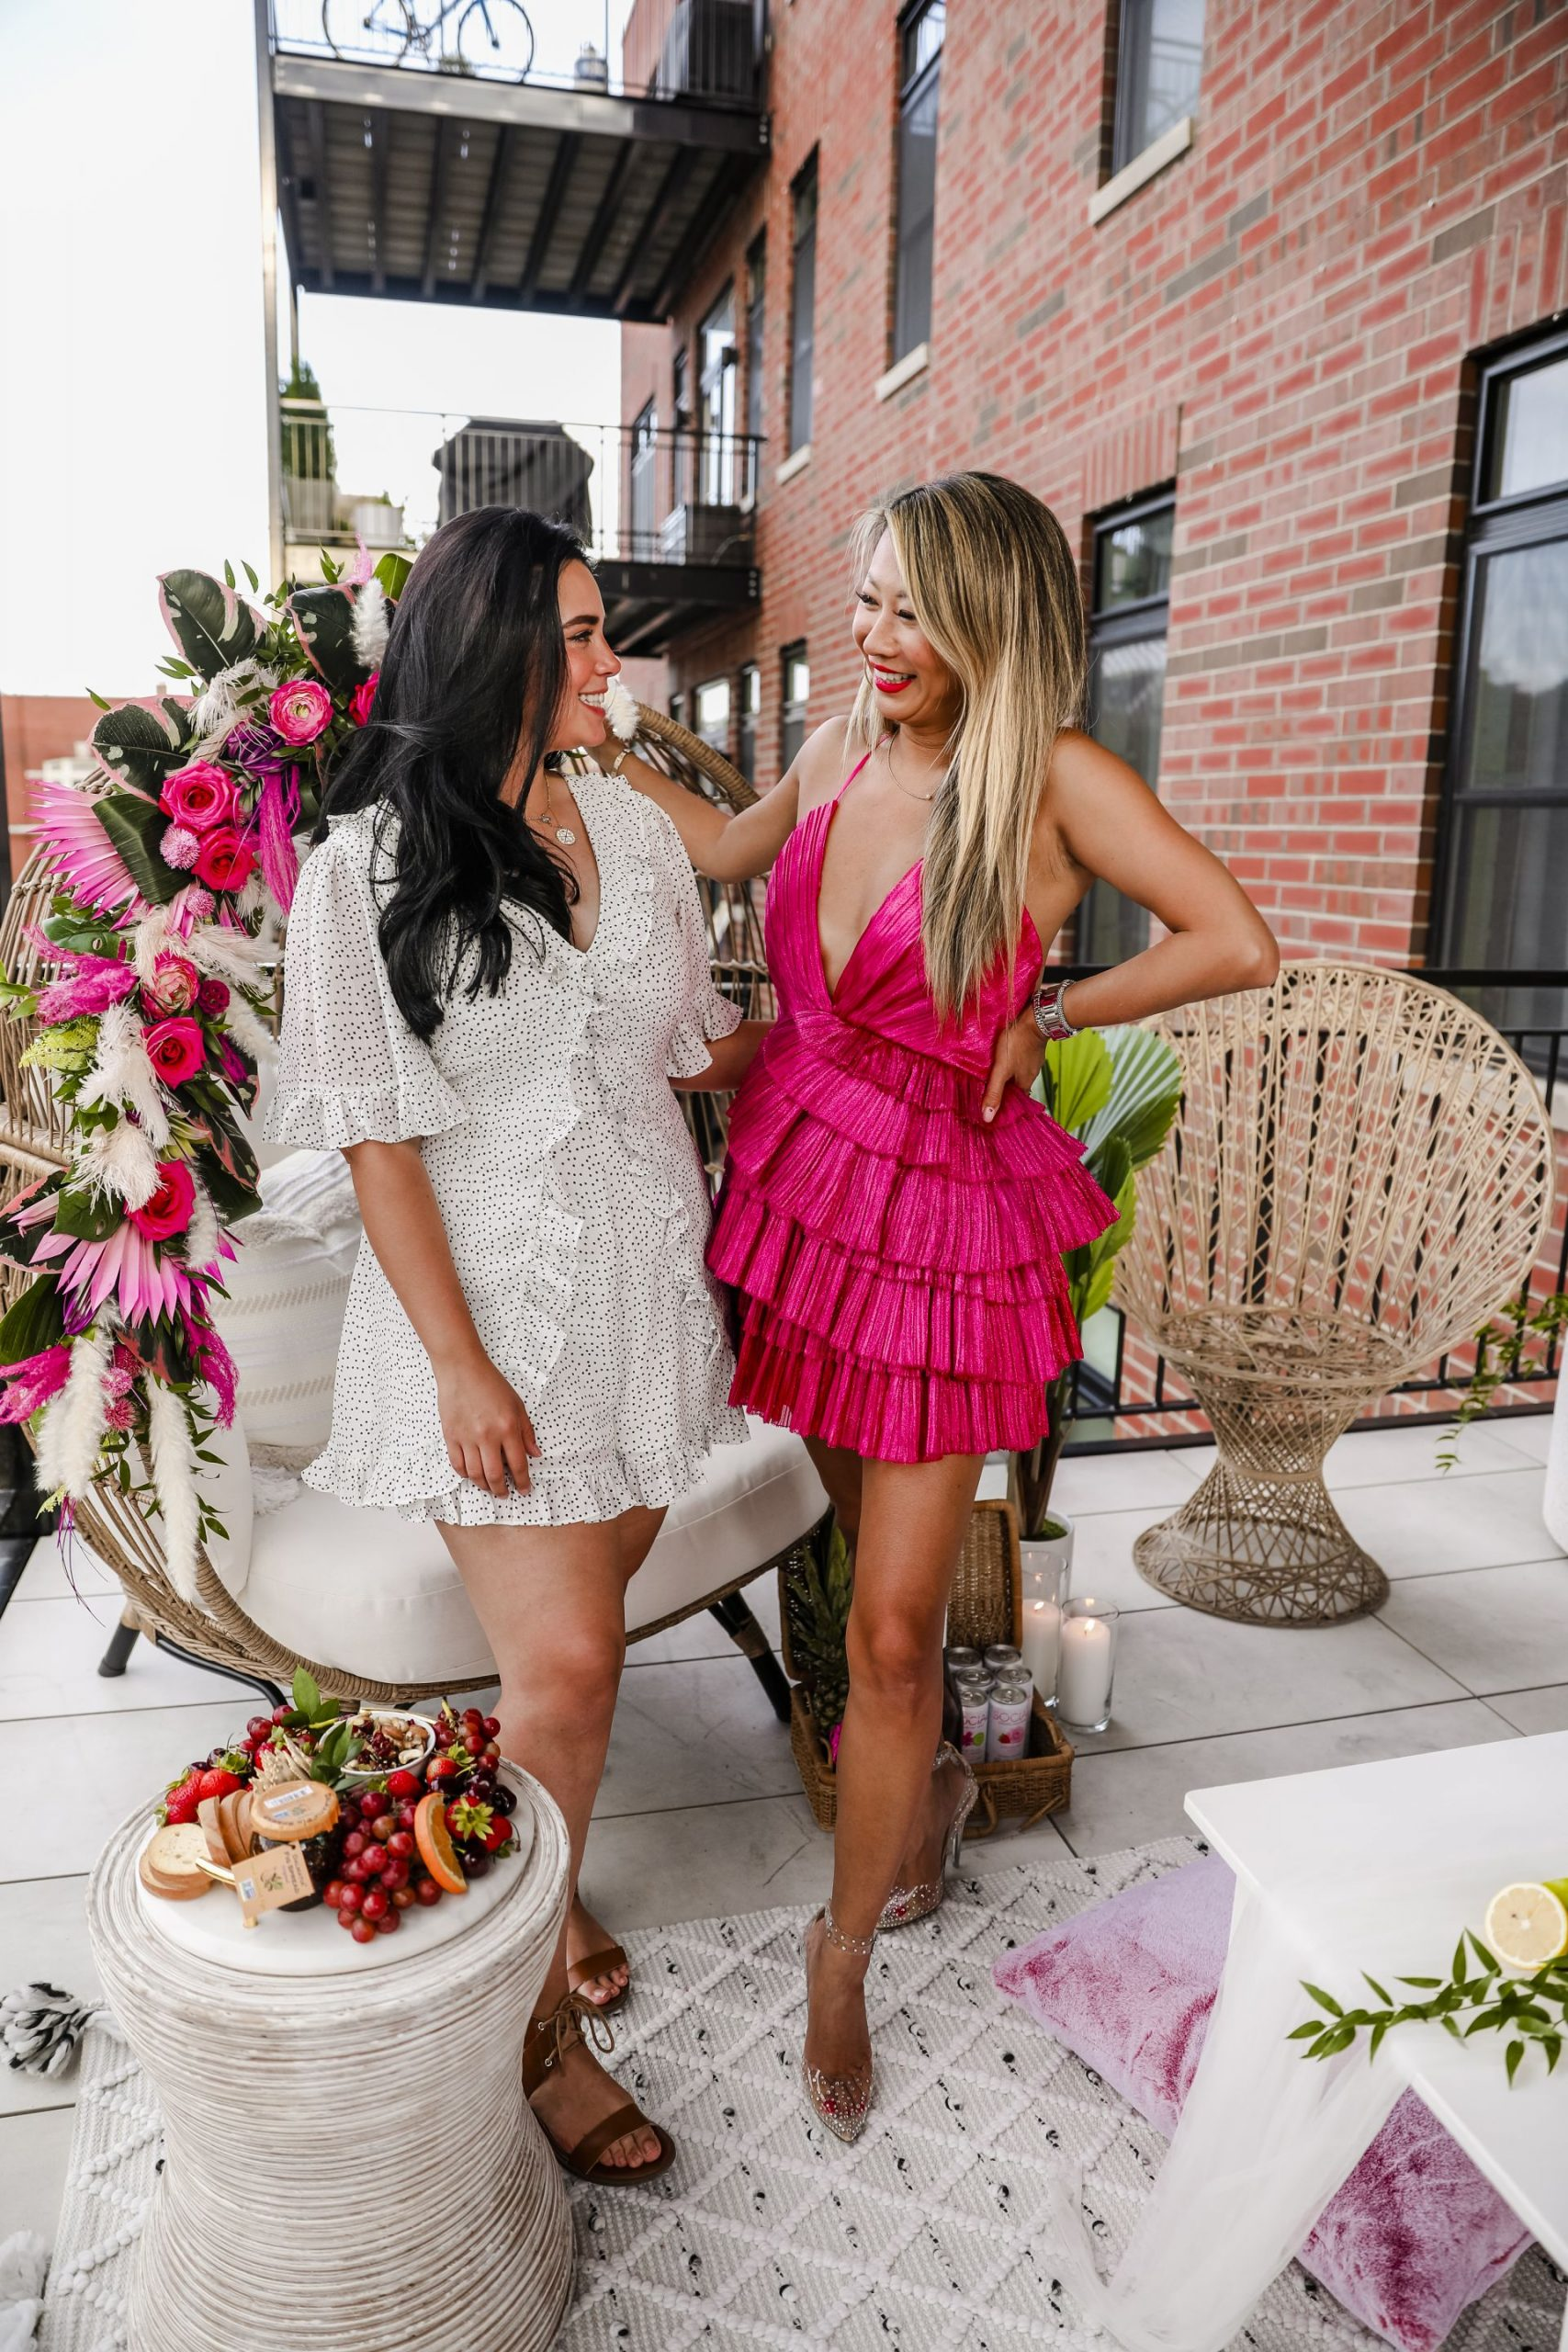 best chicago photographer, Hannah Schweiss, Chicago Event photographer, egg chair decor, summer friends party, party inspiration, glam patio inspiration, jennifer worman, chicago home